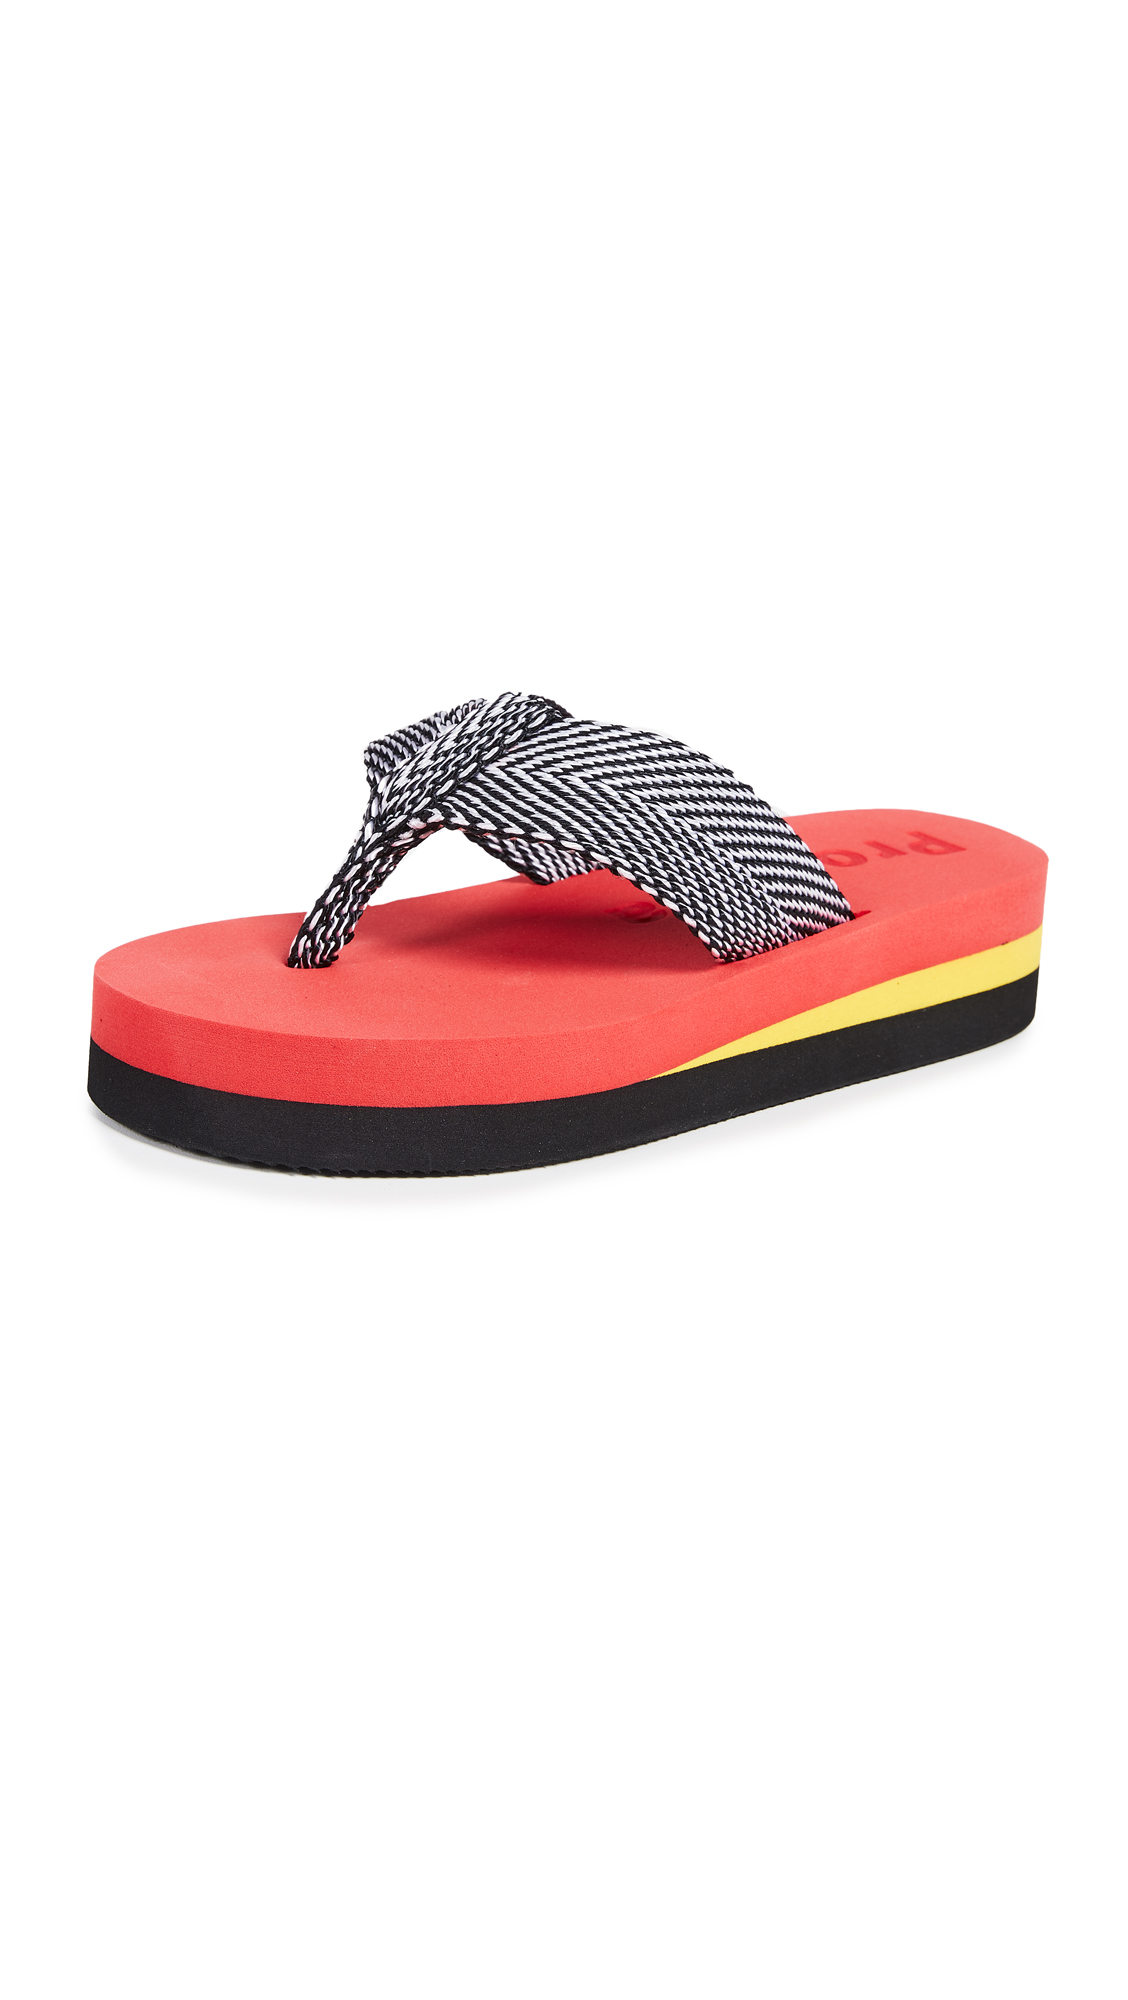 Proenza Schouler Chevron Flip Flops - Red/Yellow/Black